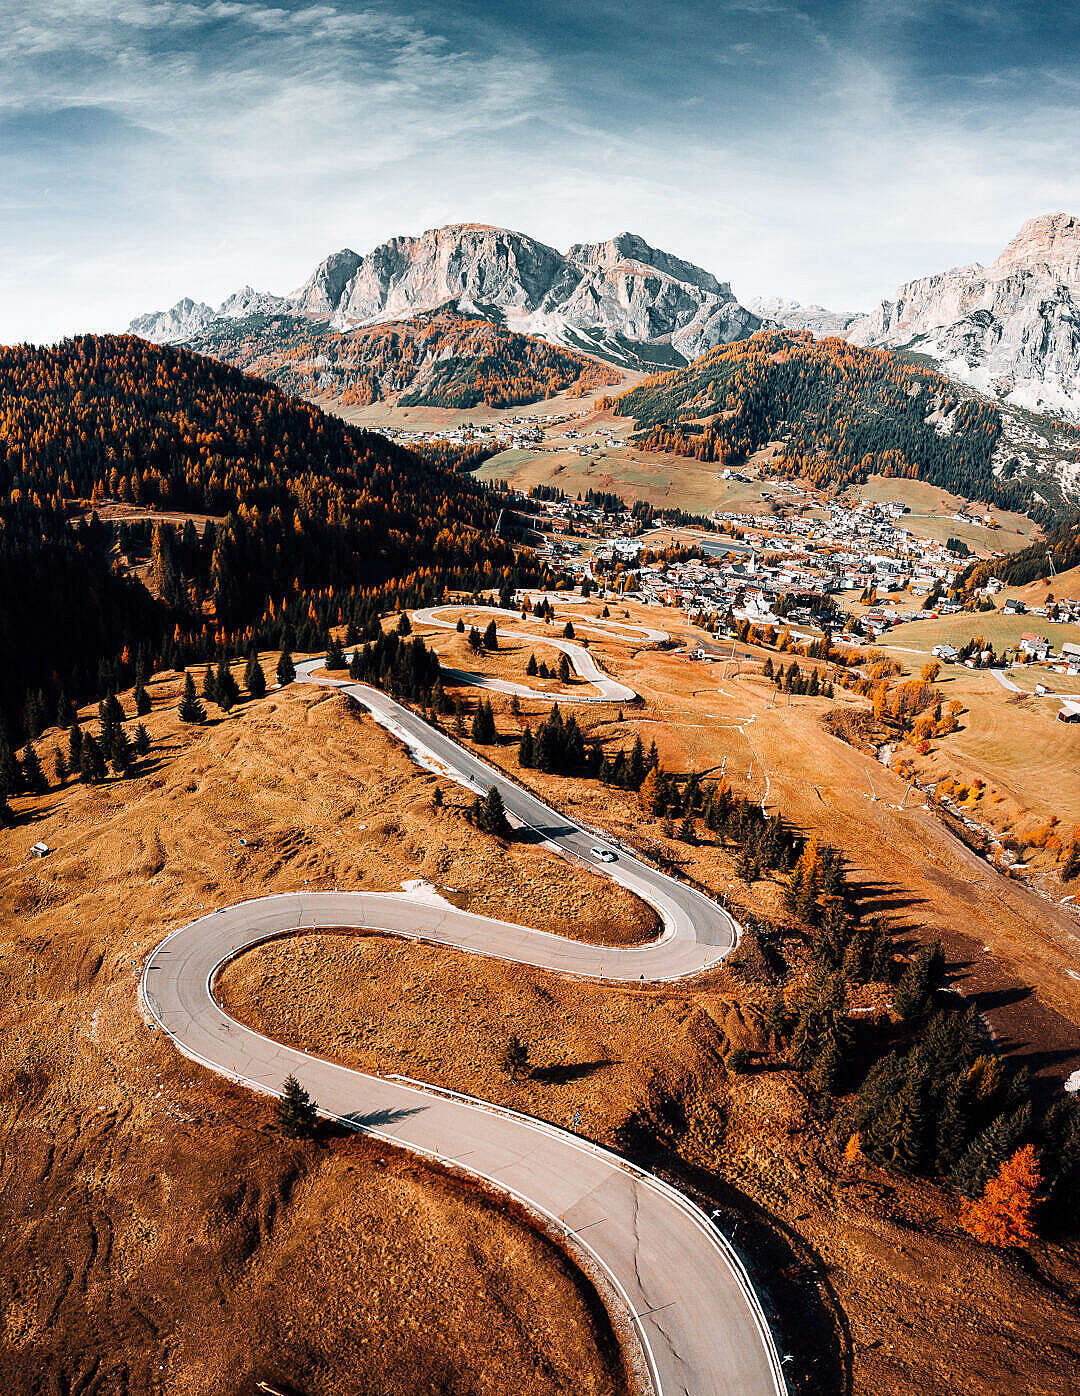 Download Alpine Roads in Italy FREE Stock Photo